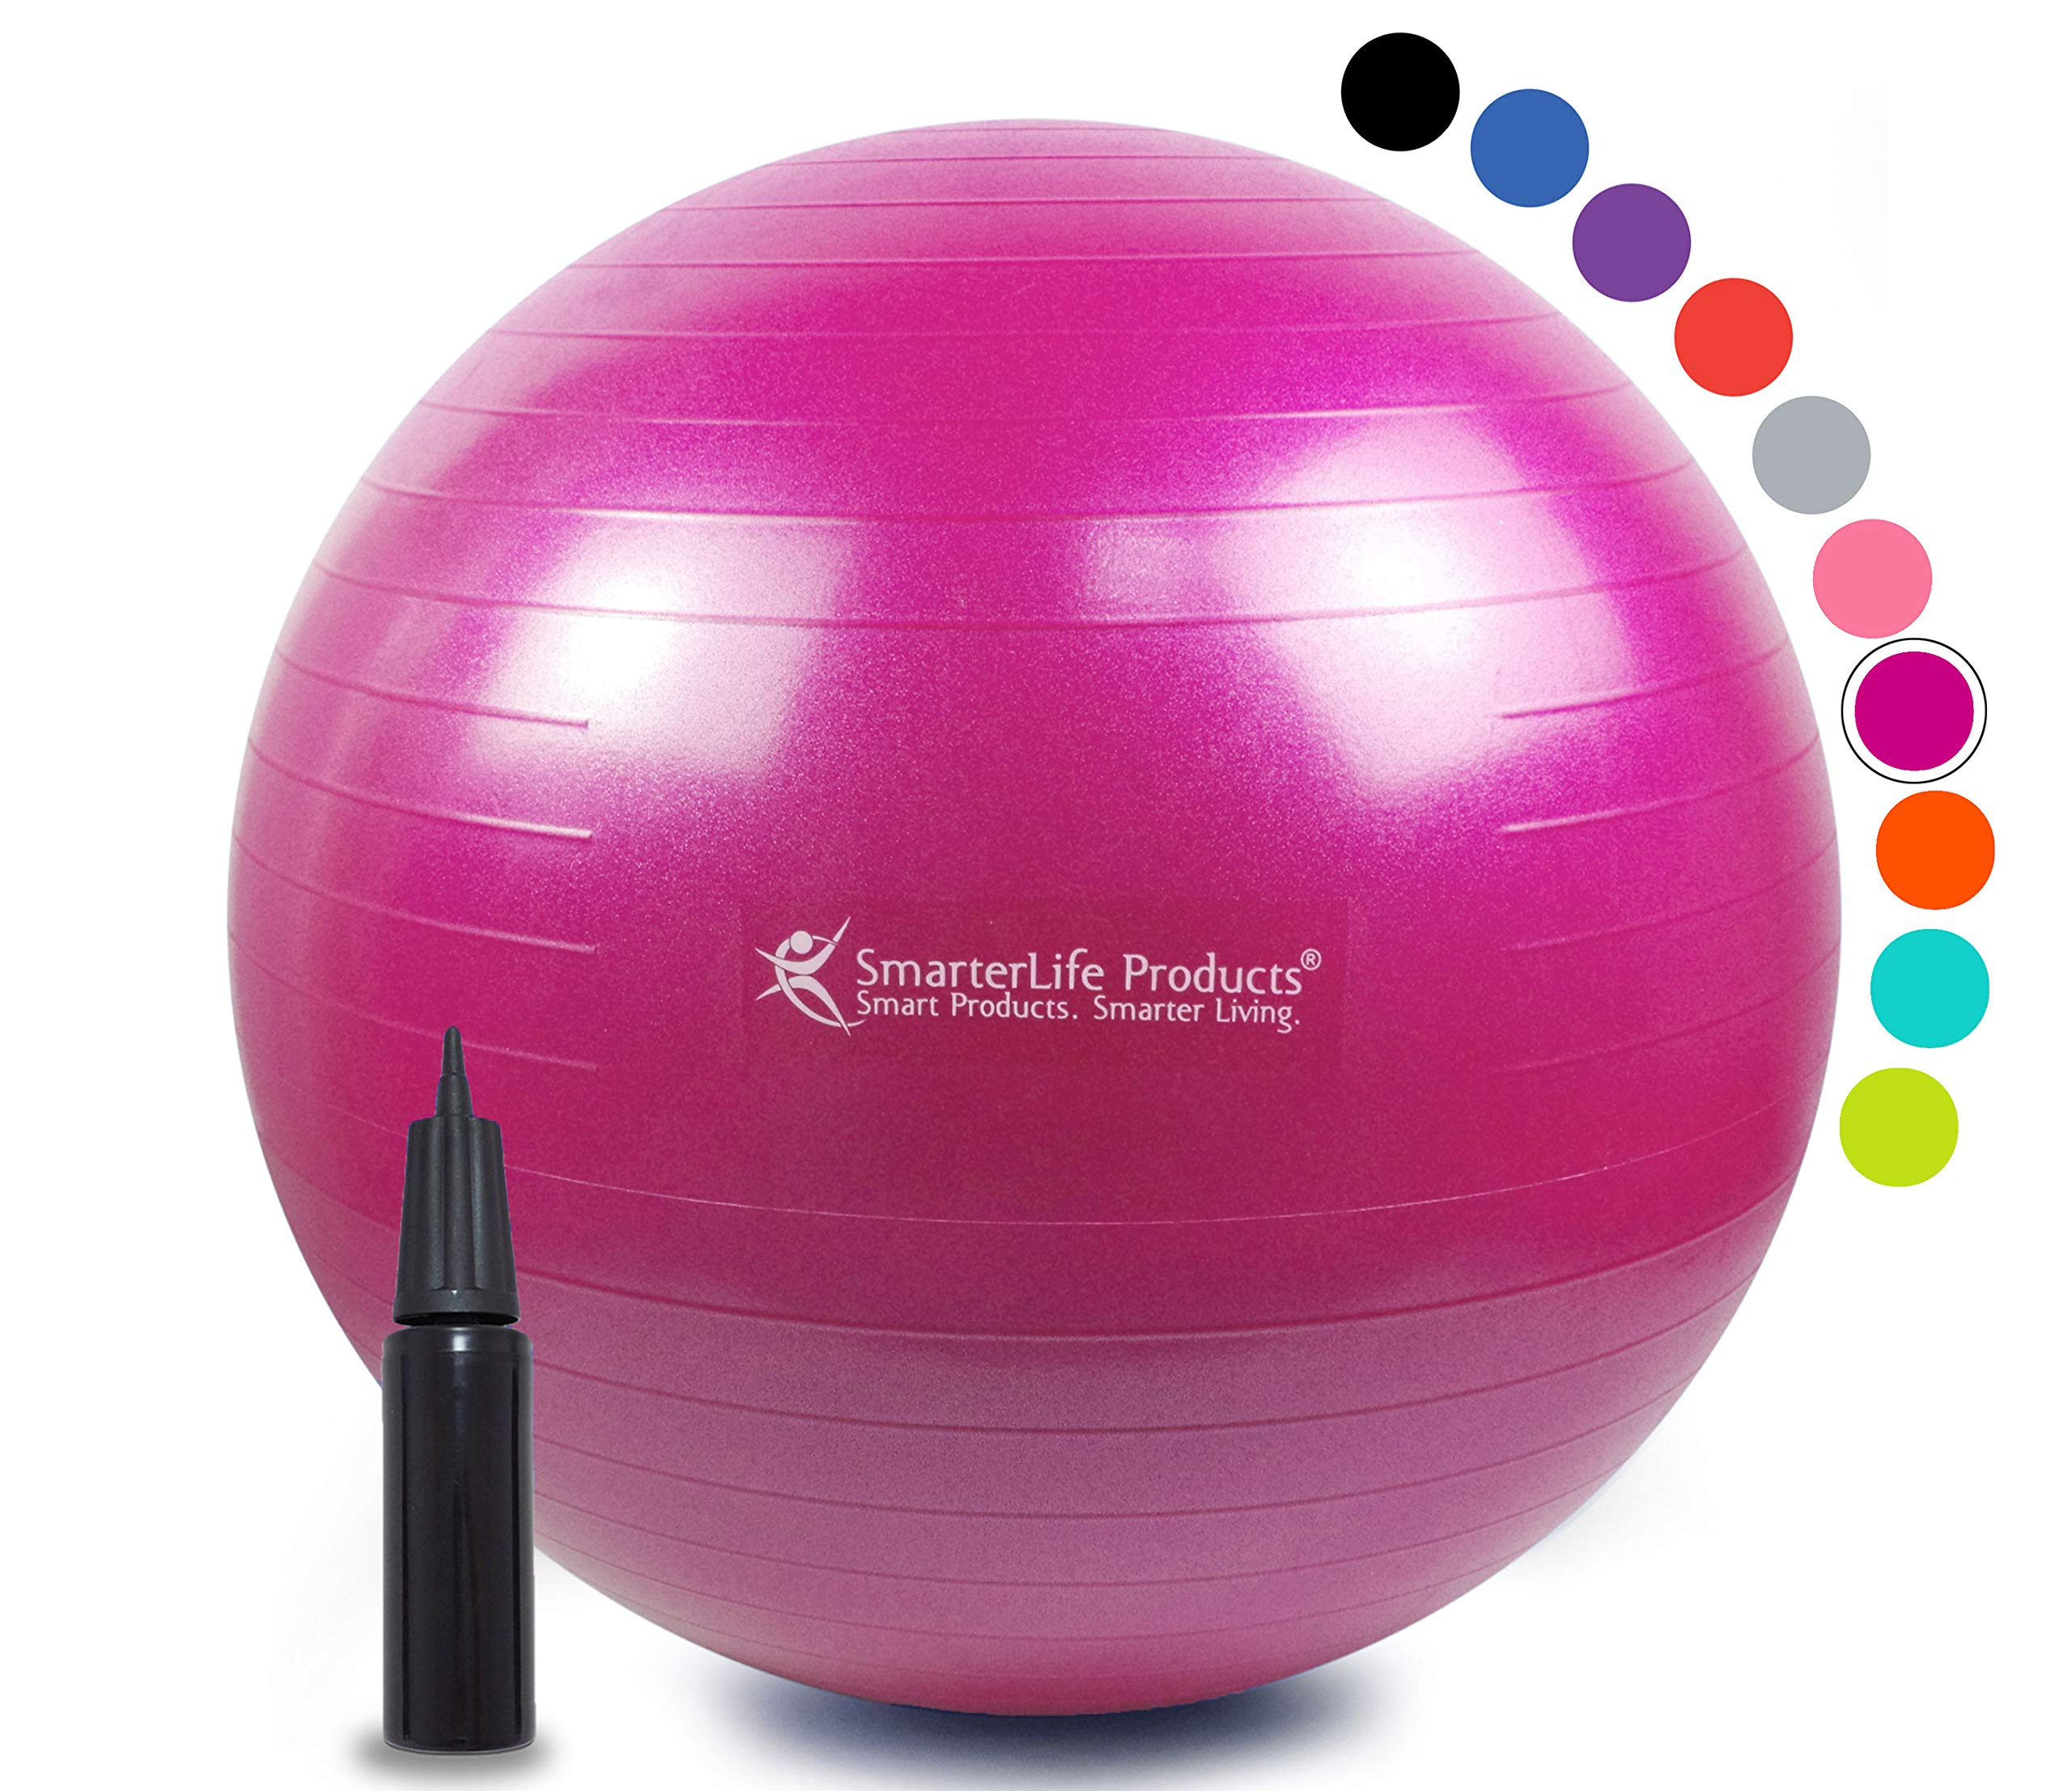 Exercise Ball for Yoga, Balance, Stability from SmarterLife - Fitness, Pilates, Birthing, Therapy, Office Ball Chair, Classroom Flexible Seating - Anti Burst, Non Slip + Workout Guide (Fuchsia, 45 cm) by SmarterLife Products (Image #1)